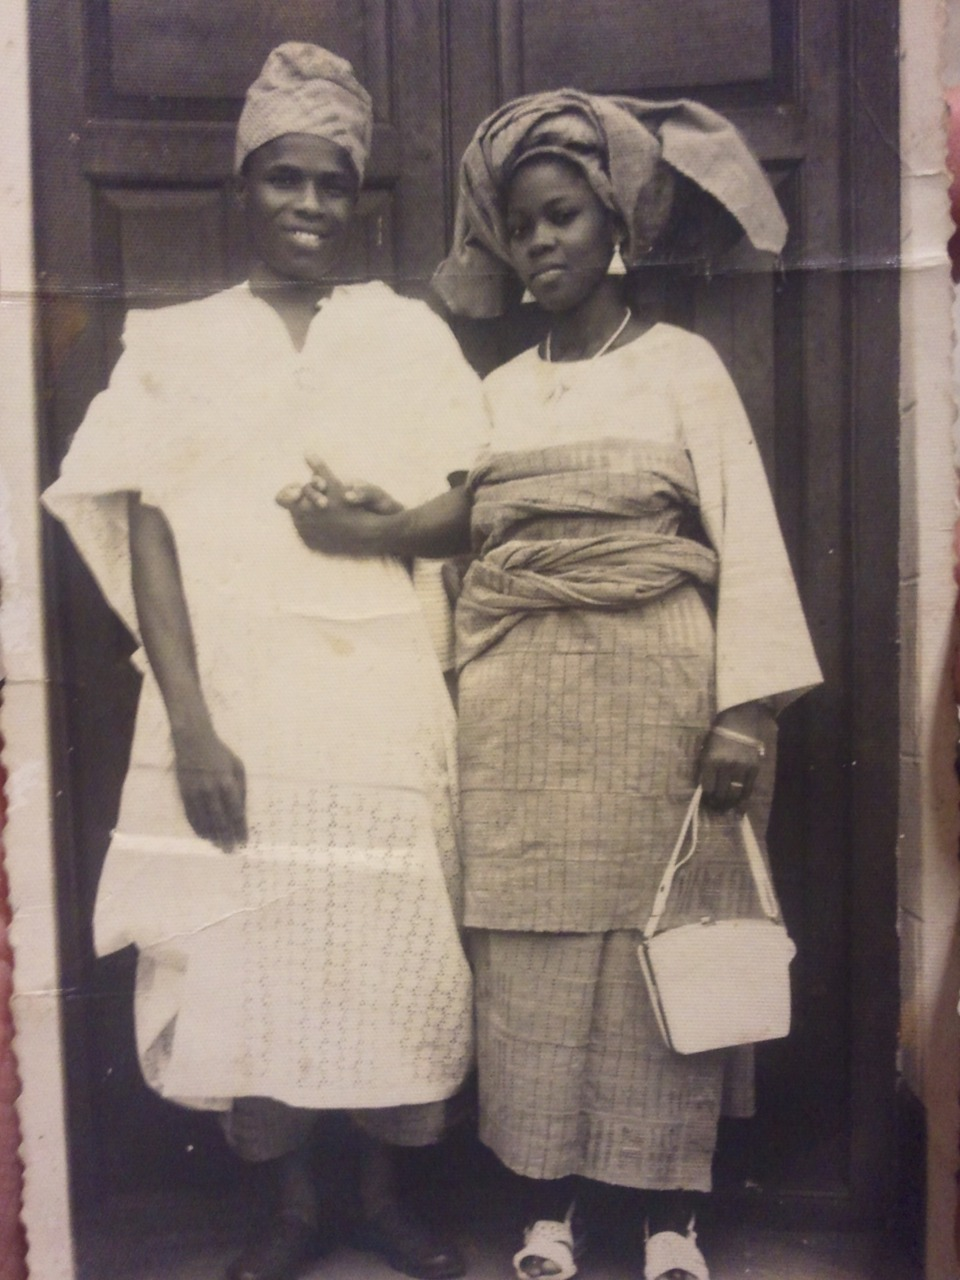 Vintage photograph of a Yoruba couple via imjusssaying & dynamicafrica: